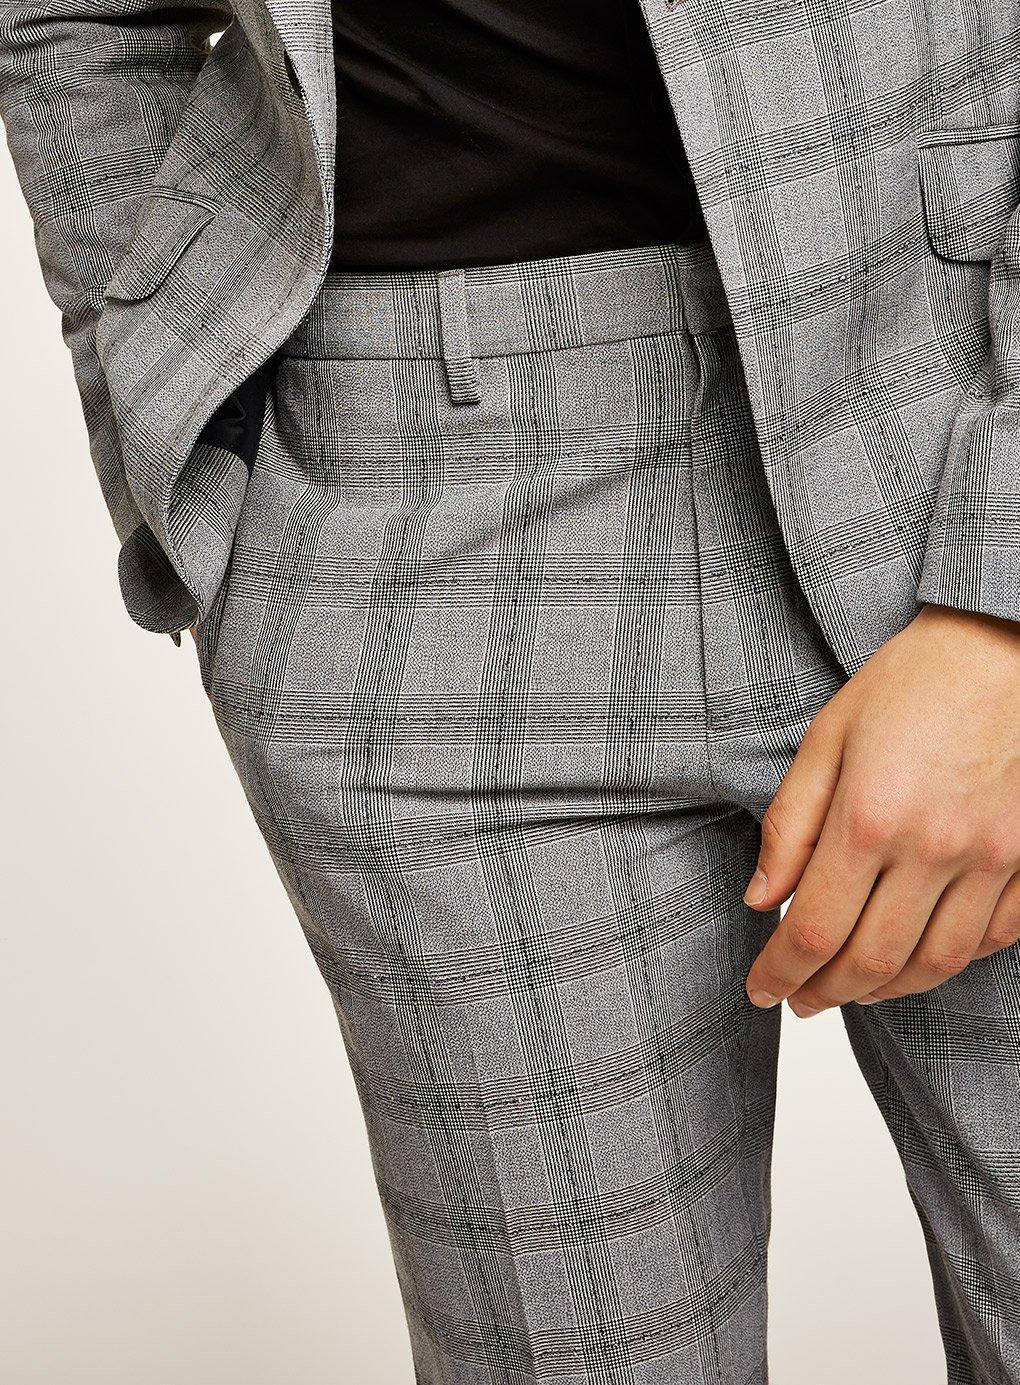 daa90af17ab7 Topman - Black And White Check Neppy Muscle Fit Suit Pant for Men - Lyst.  View fullscreen